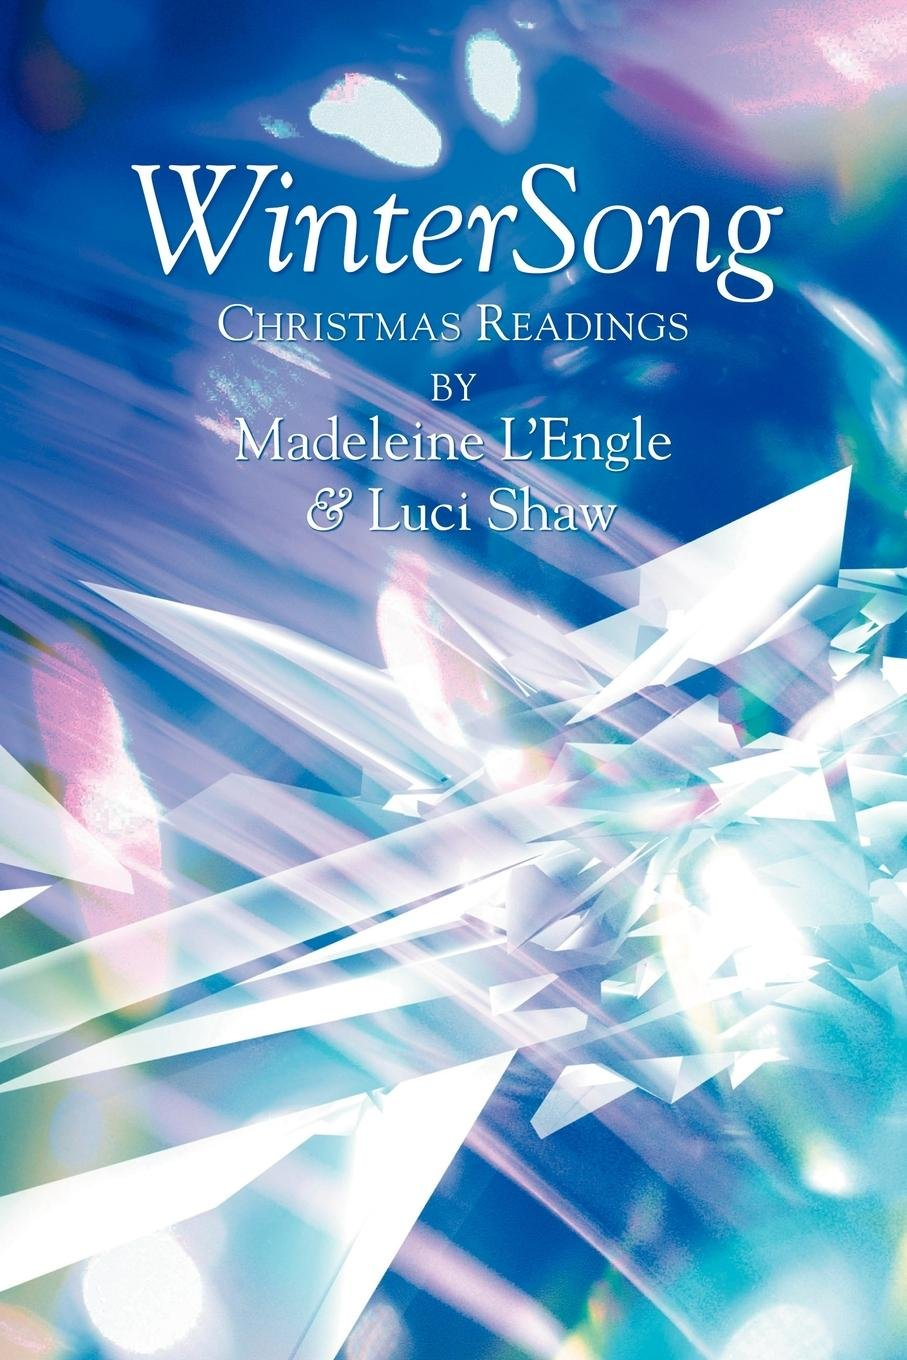 Christmas Readings.Wintersong Christmas Readings Madeleine L Engle Luci Shaw